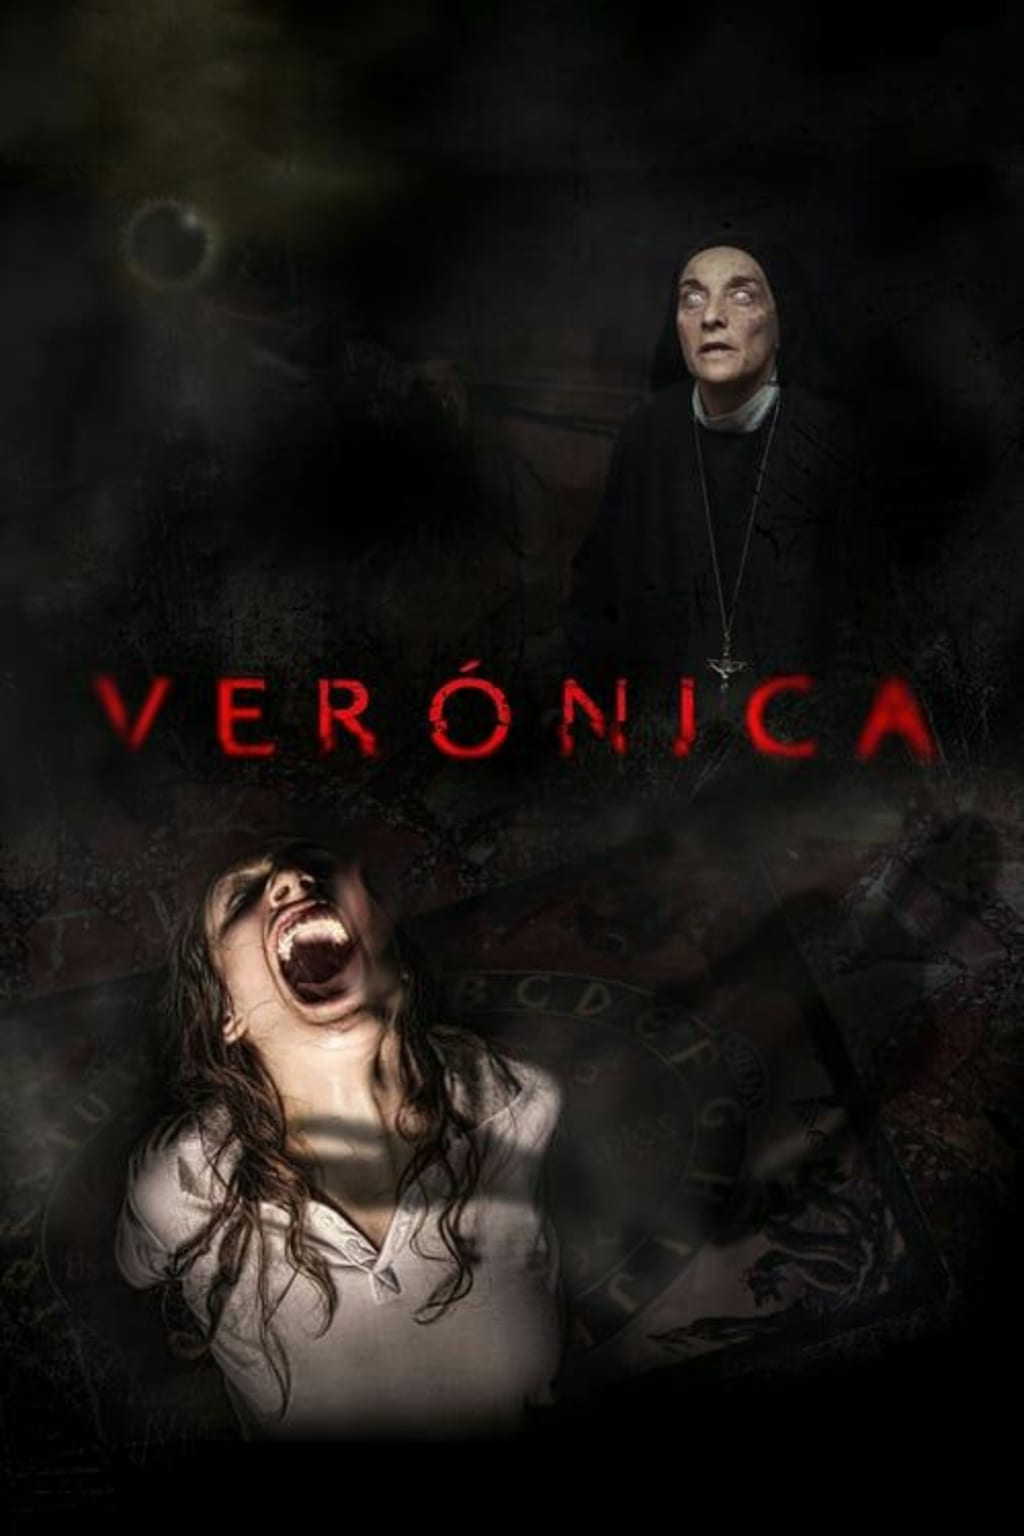 The True Story of Veronica